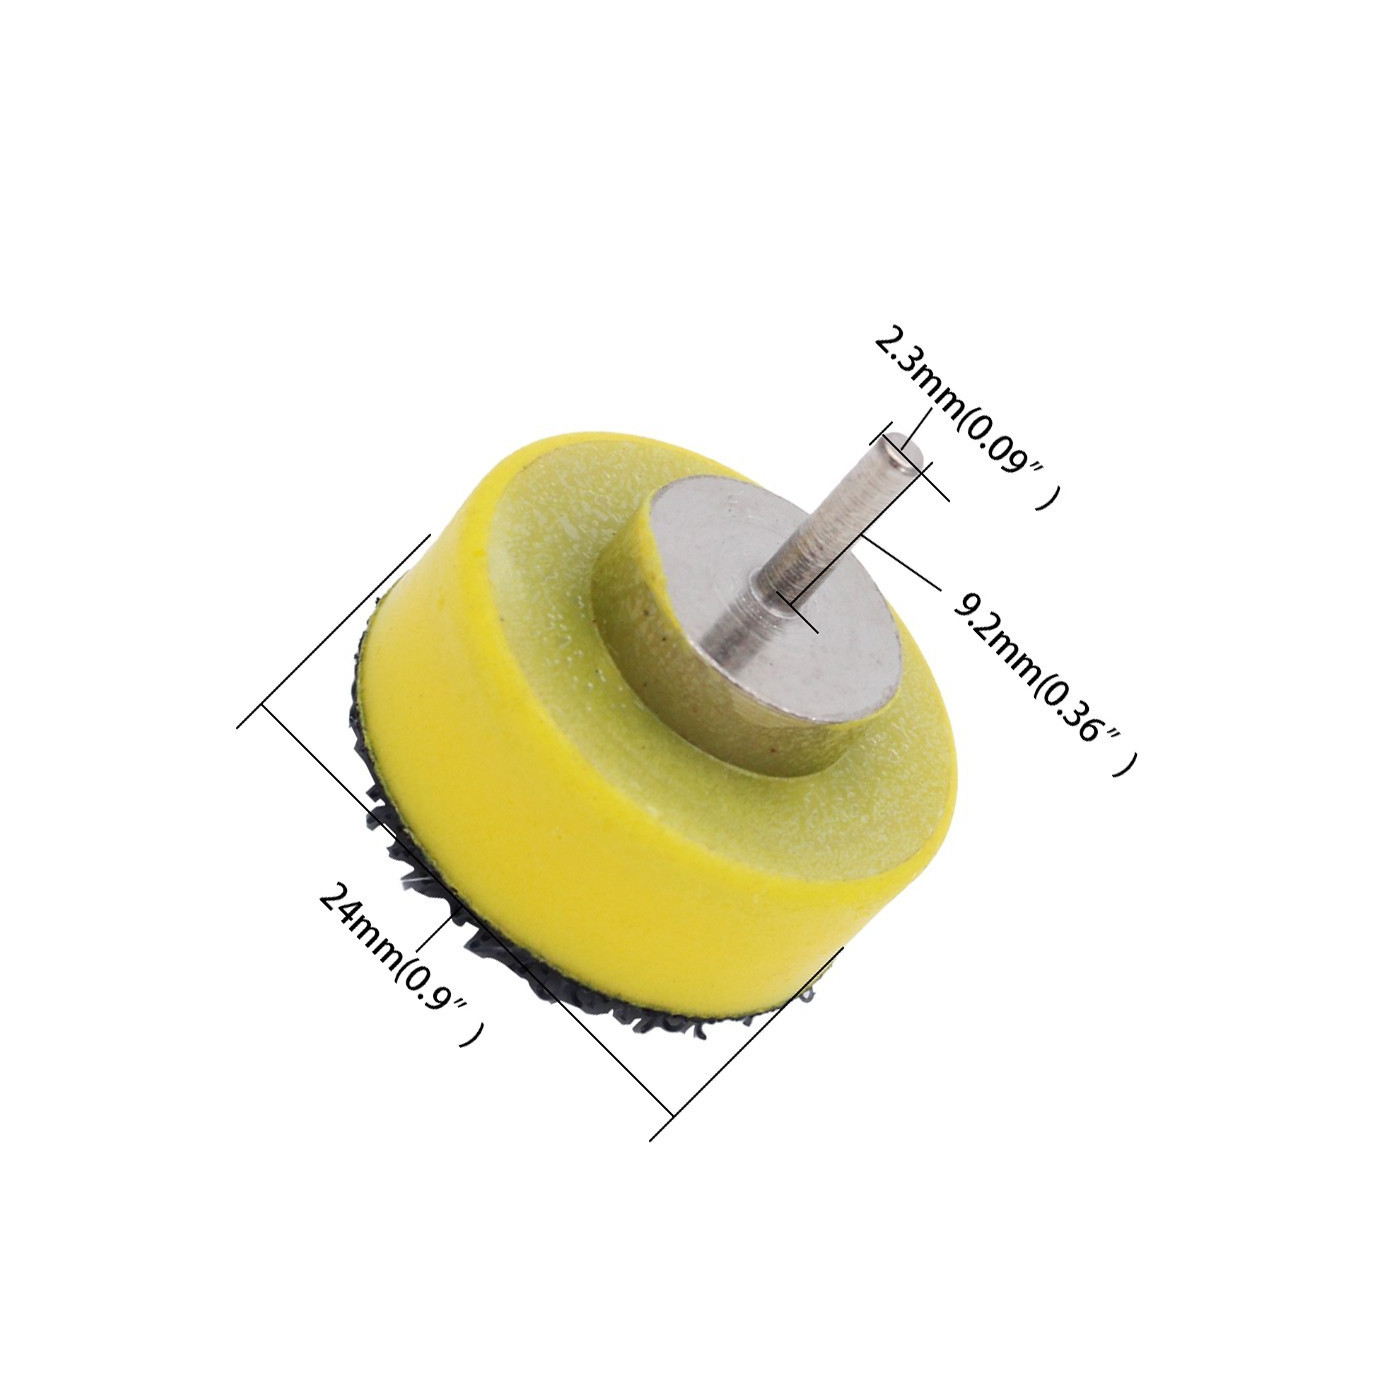 25 mm wide abrasive disc holder (hook and loop)